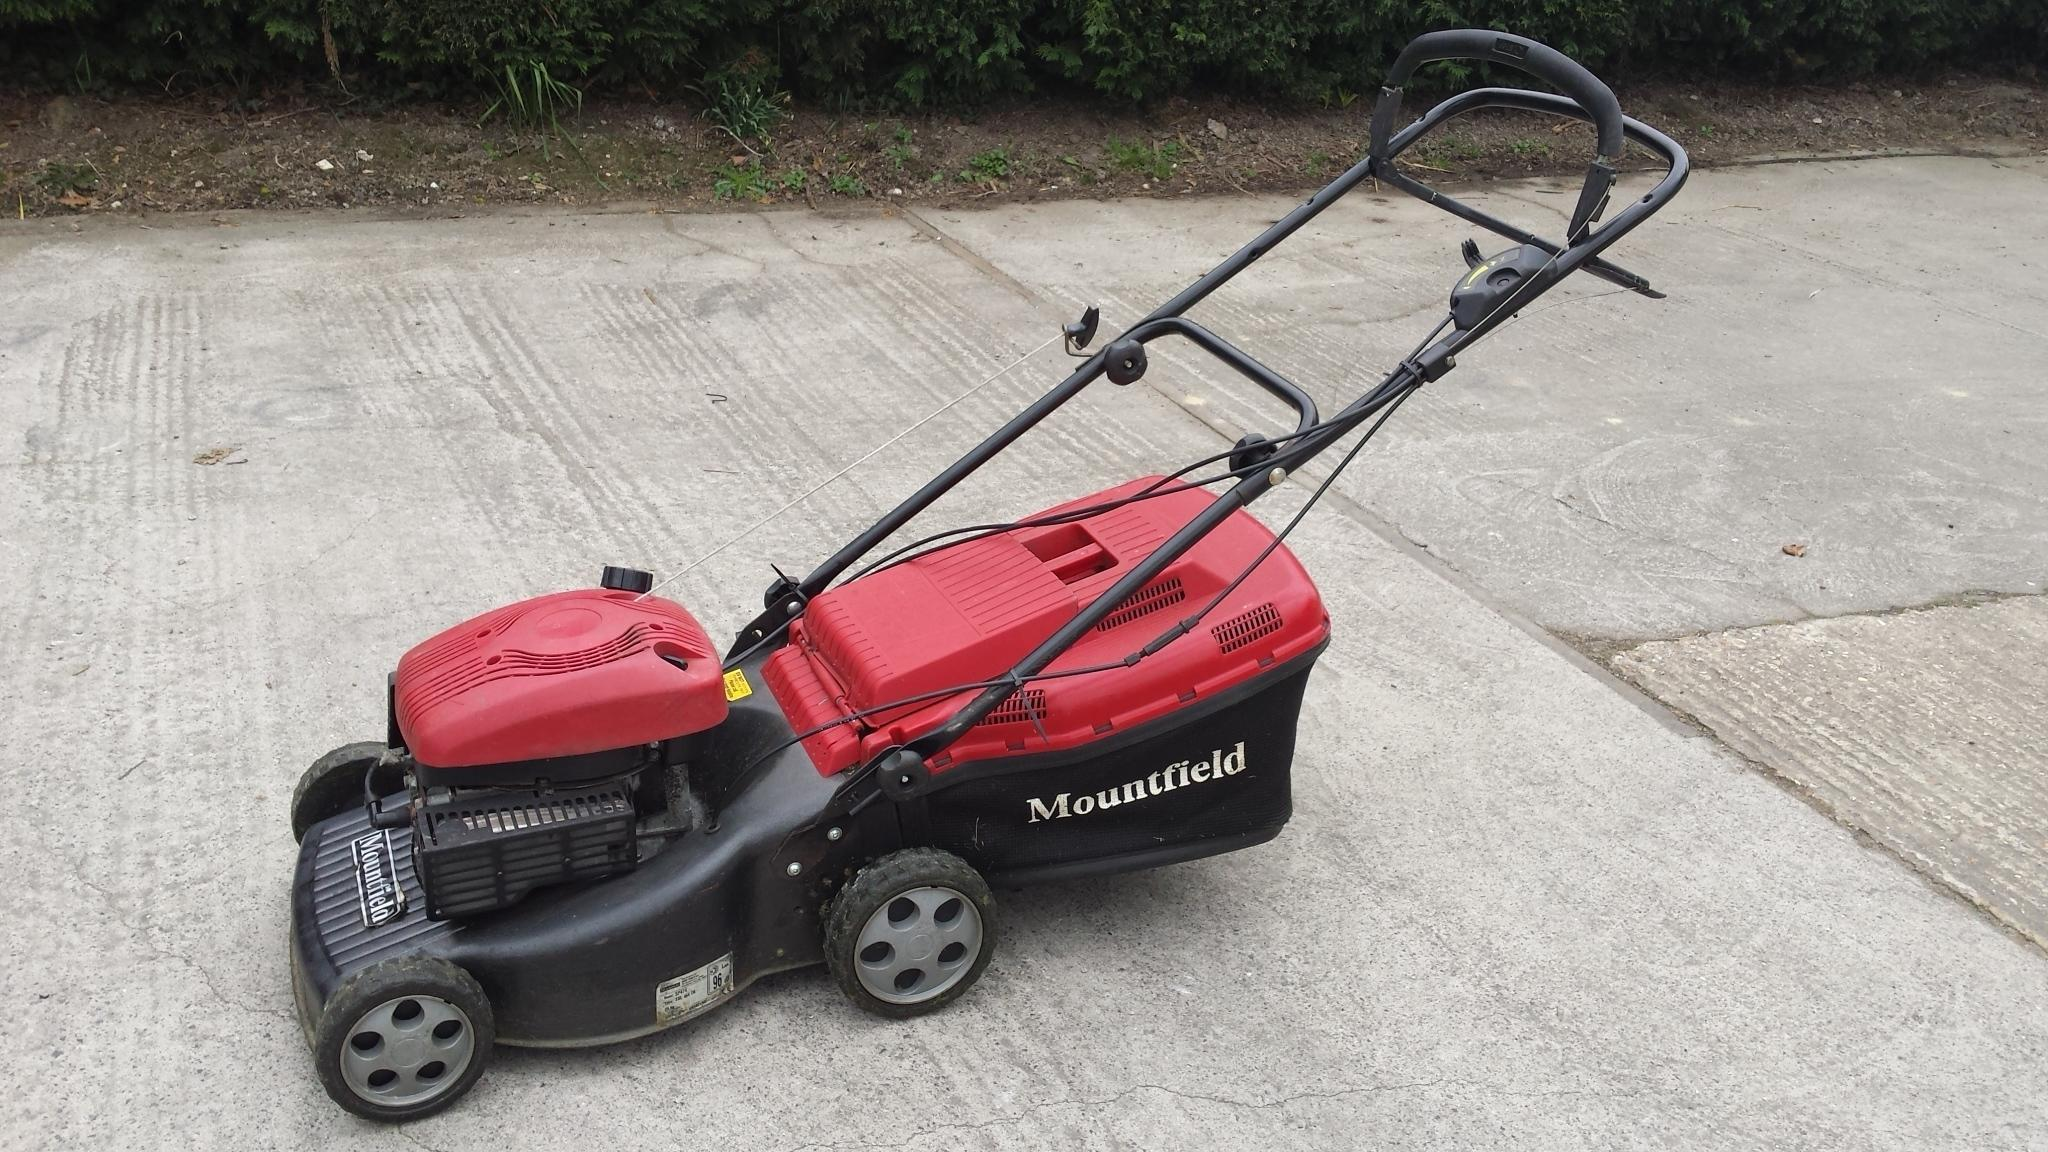 Mountfield self propelled petrol mower clean condition